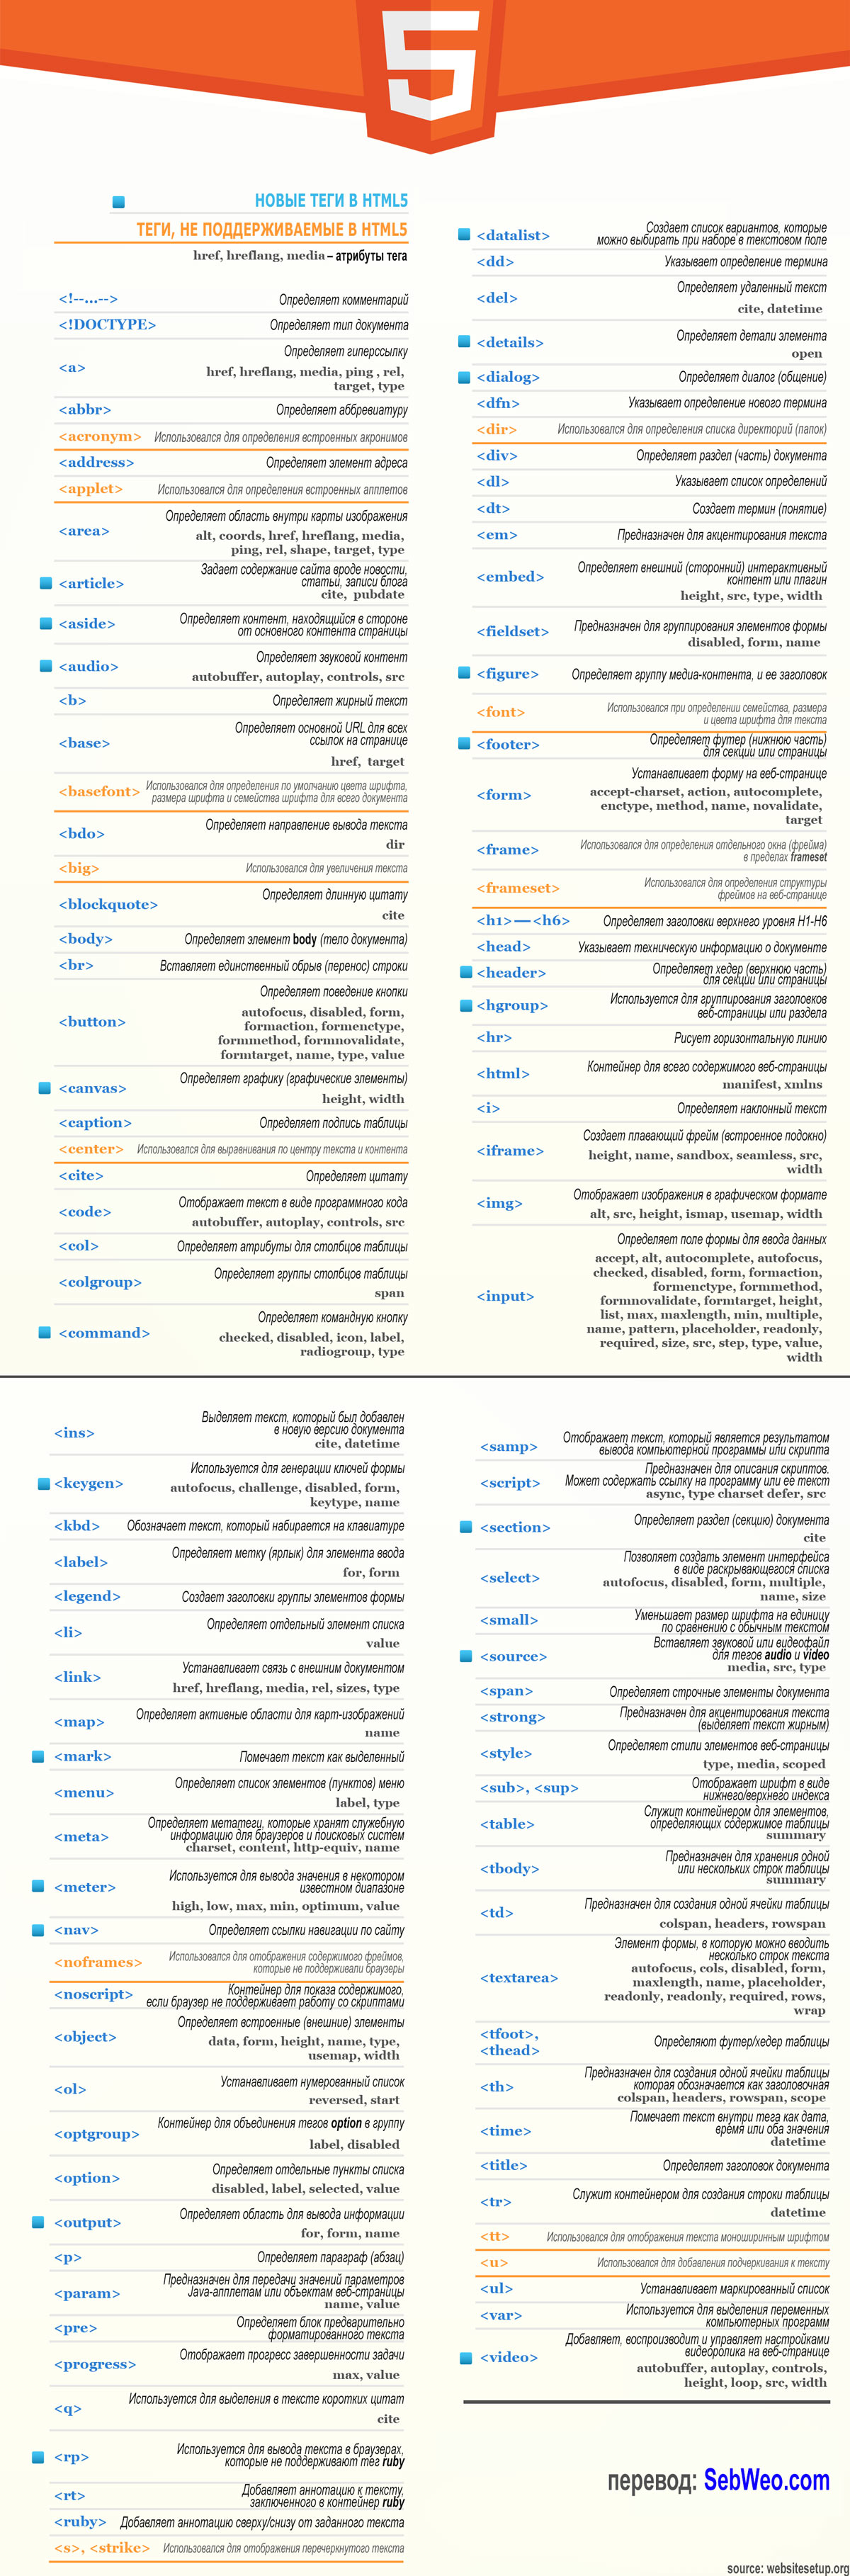 html5 cheat sheet pdf 2015